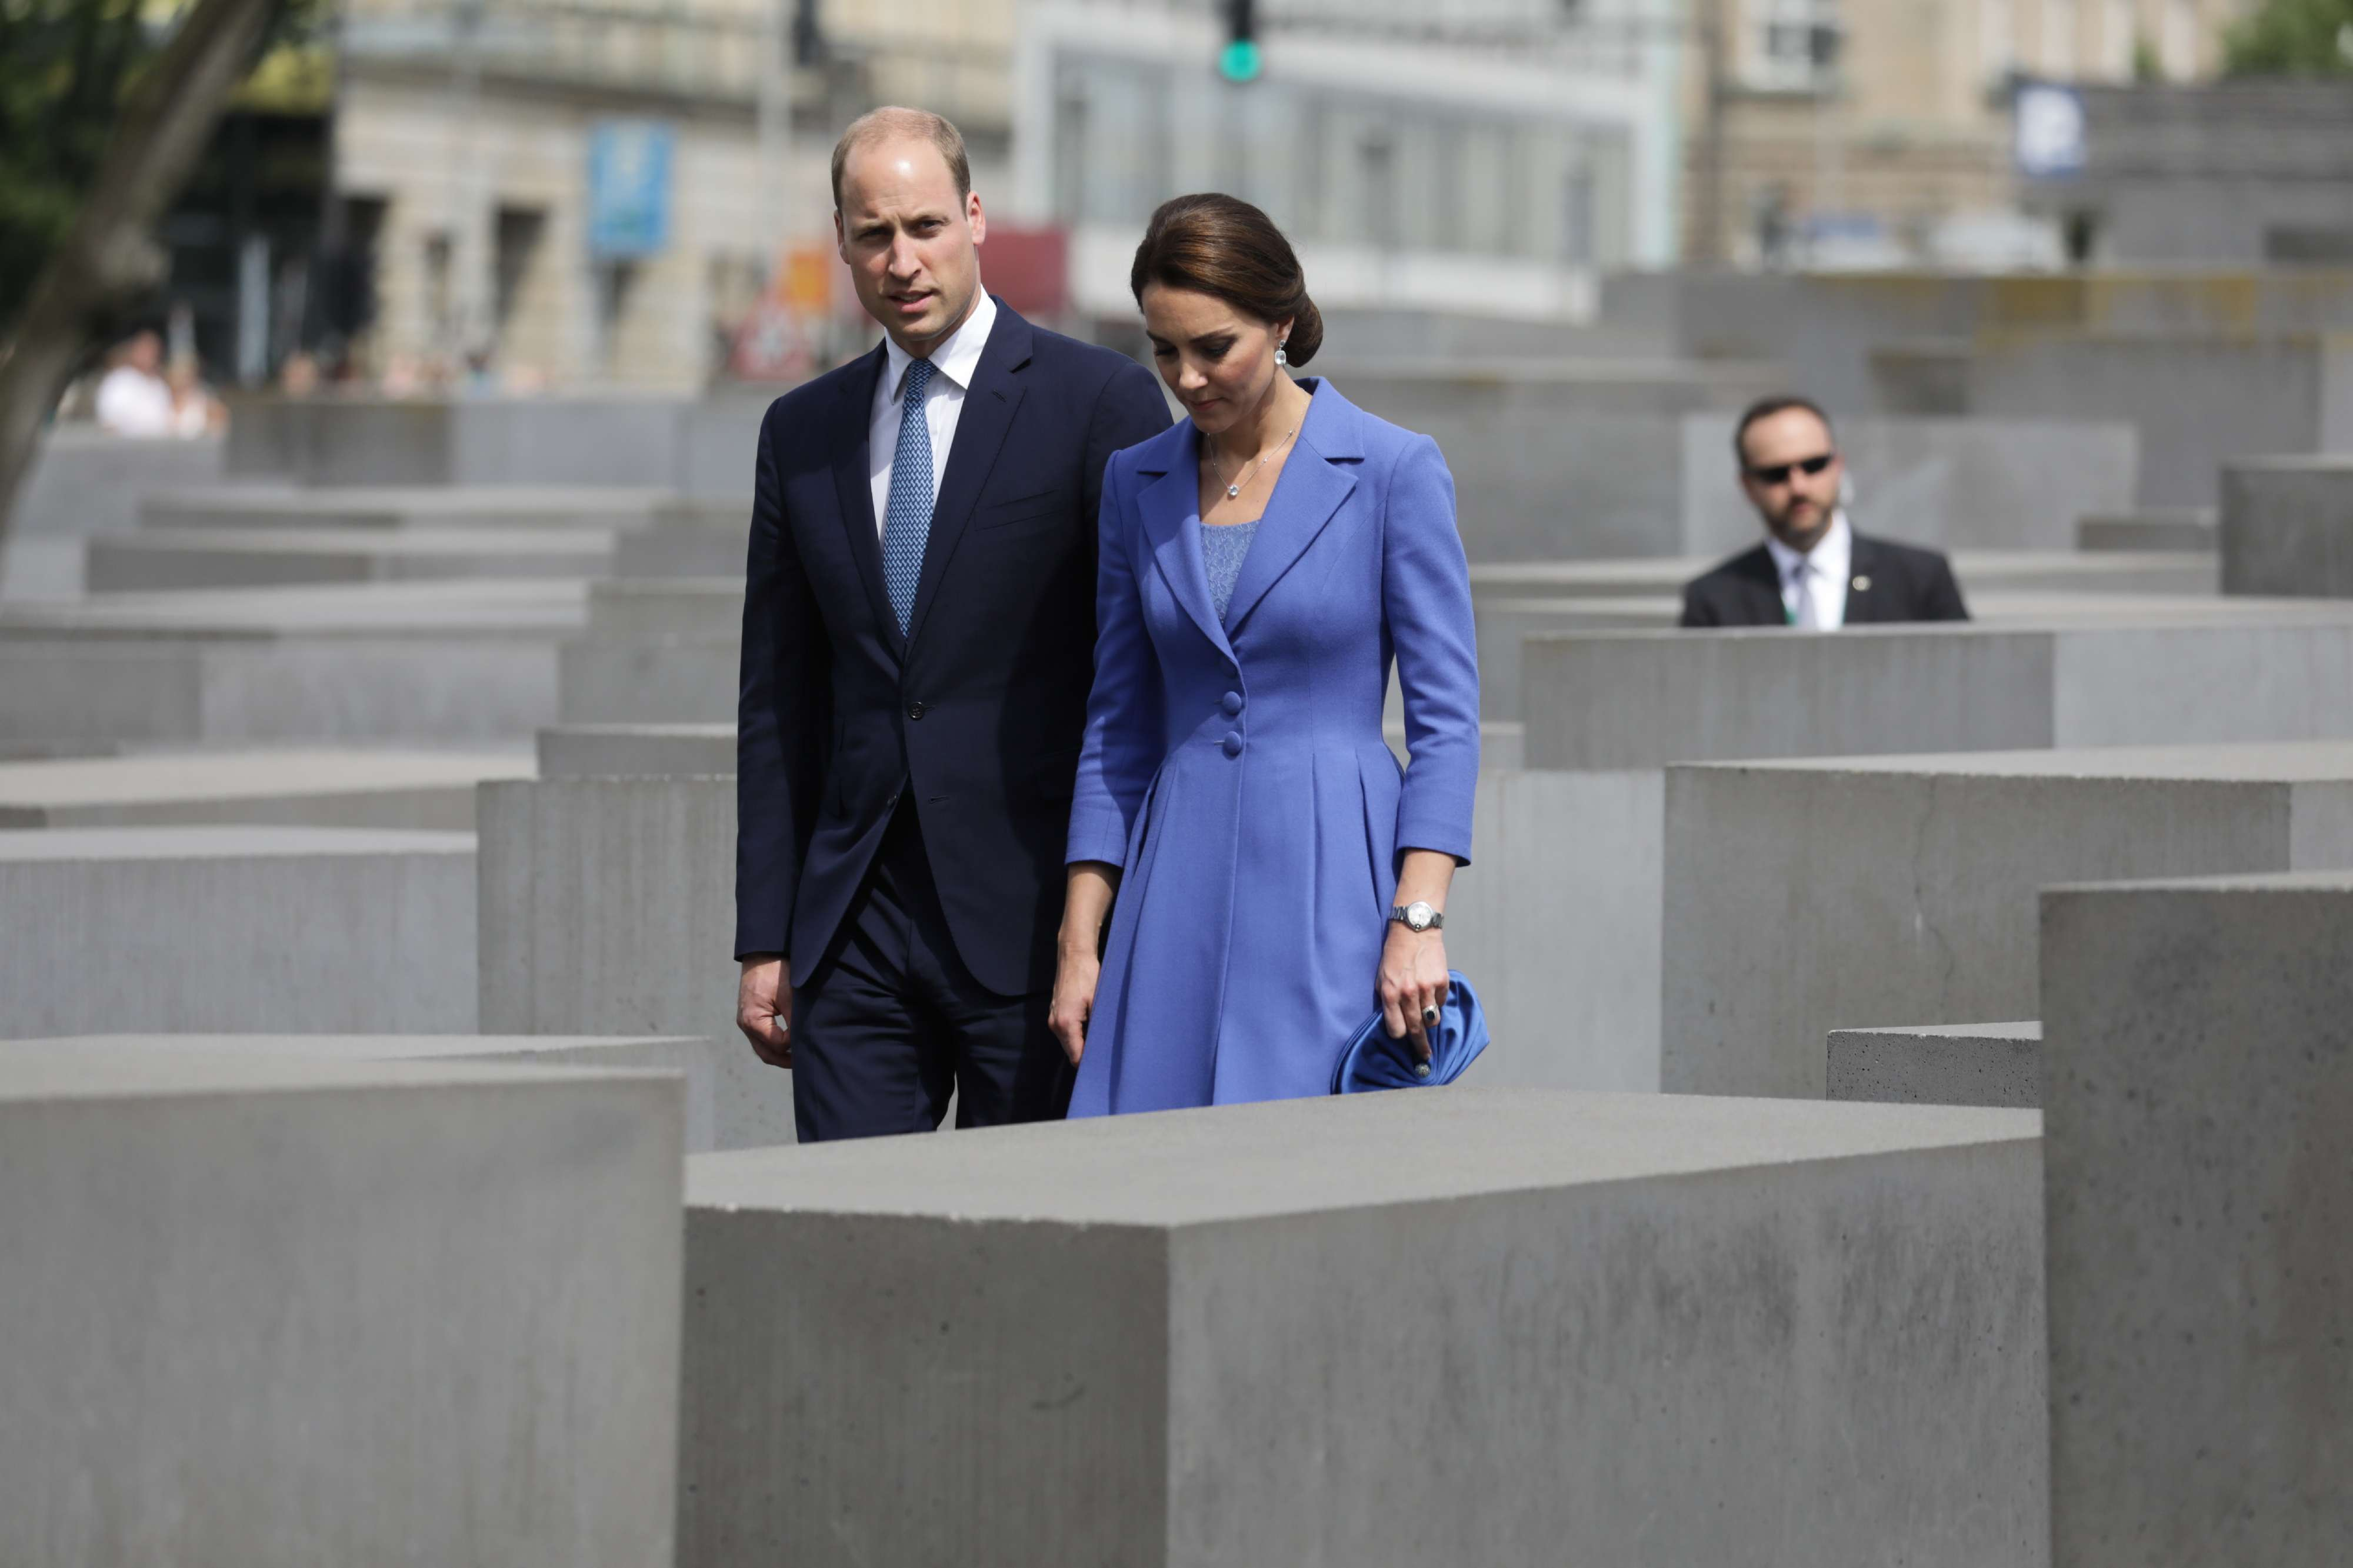 Britain's Prince William and his wife Kate, Duchess of Cambridge, visit the Memorial to the Murdered Jews of Europe, also known as the Holocaust Memorial, in Berlin, last July. (AP)